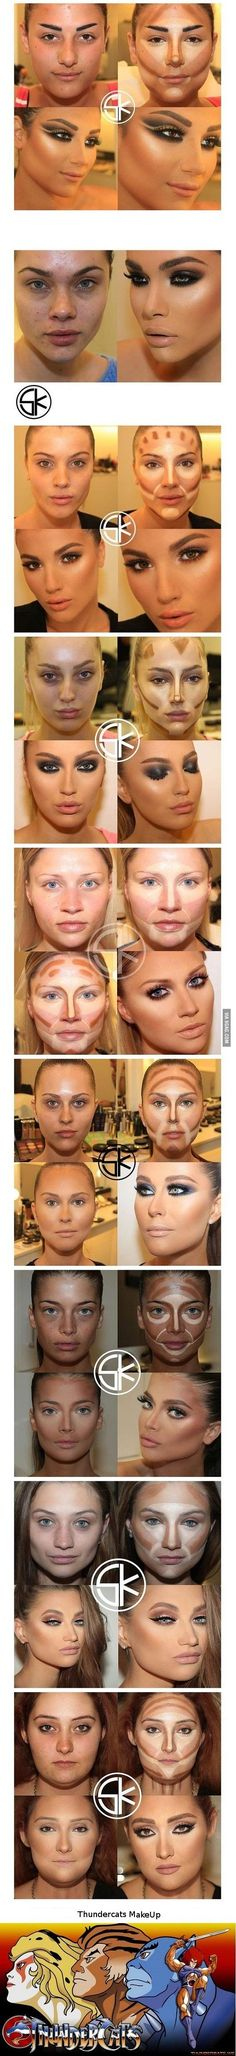 Oh wow, this is a dramatic difference, these before and after make-up transformation. I heard stories of Men taking their Wives to court over make-up sorcery. Face Contouring, Contour Makeup, Contouring And Highlighting, Skin Makeup, All Things Beauty, Beauty Make Up, Hair Beauty, Love Makeup, Makeup Looks